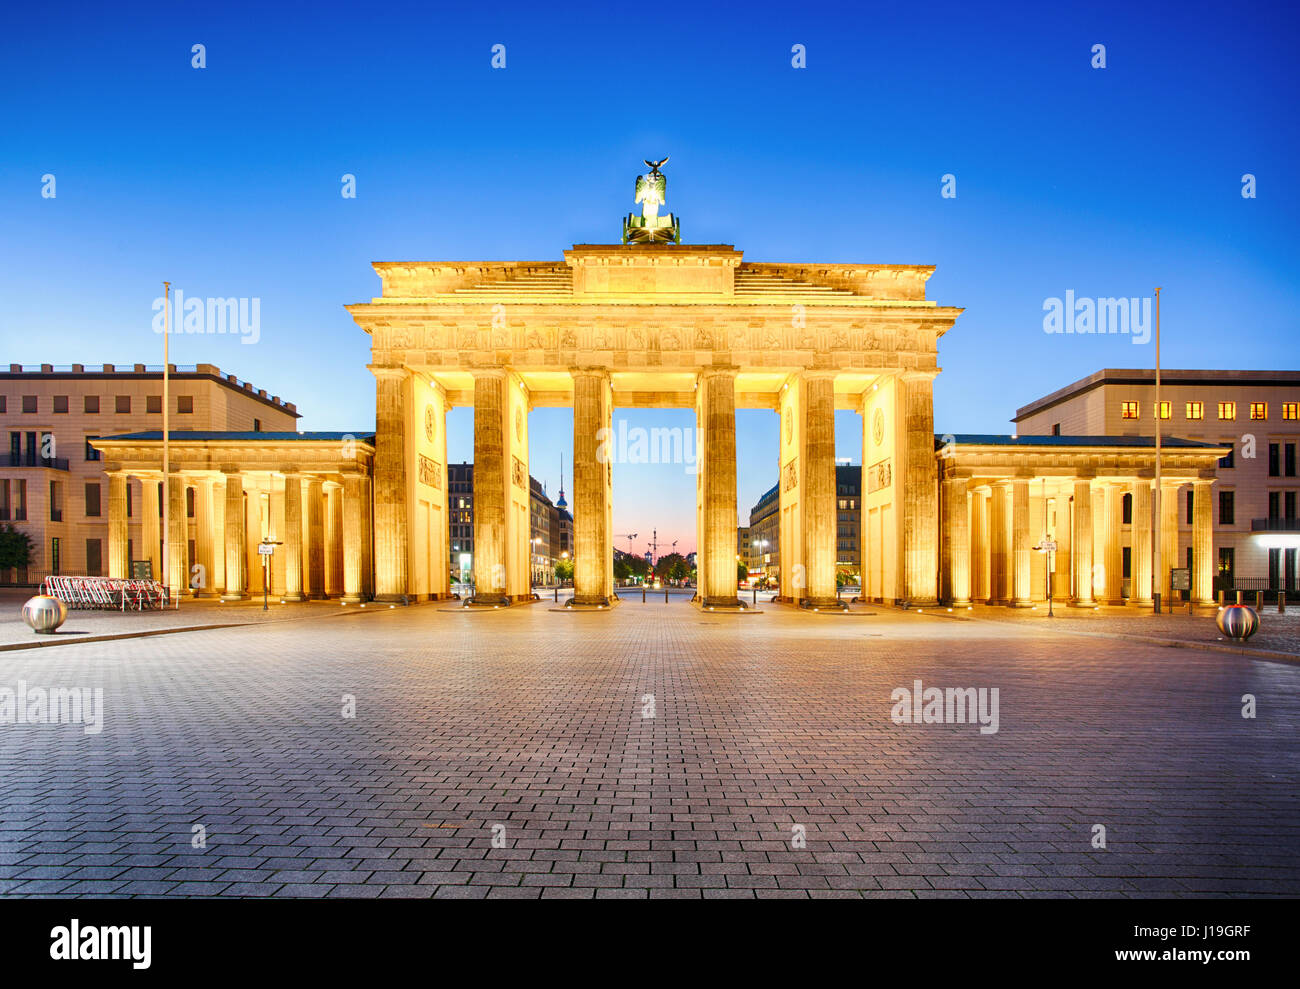 Brandenburg gate of Berlin, German - Stock Image